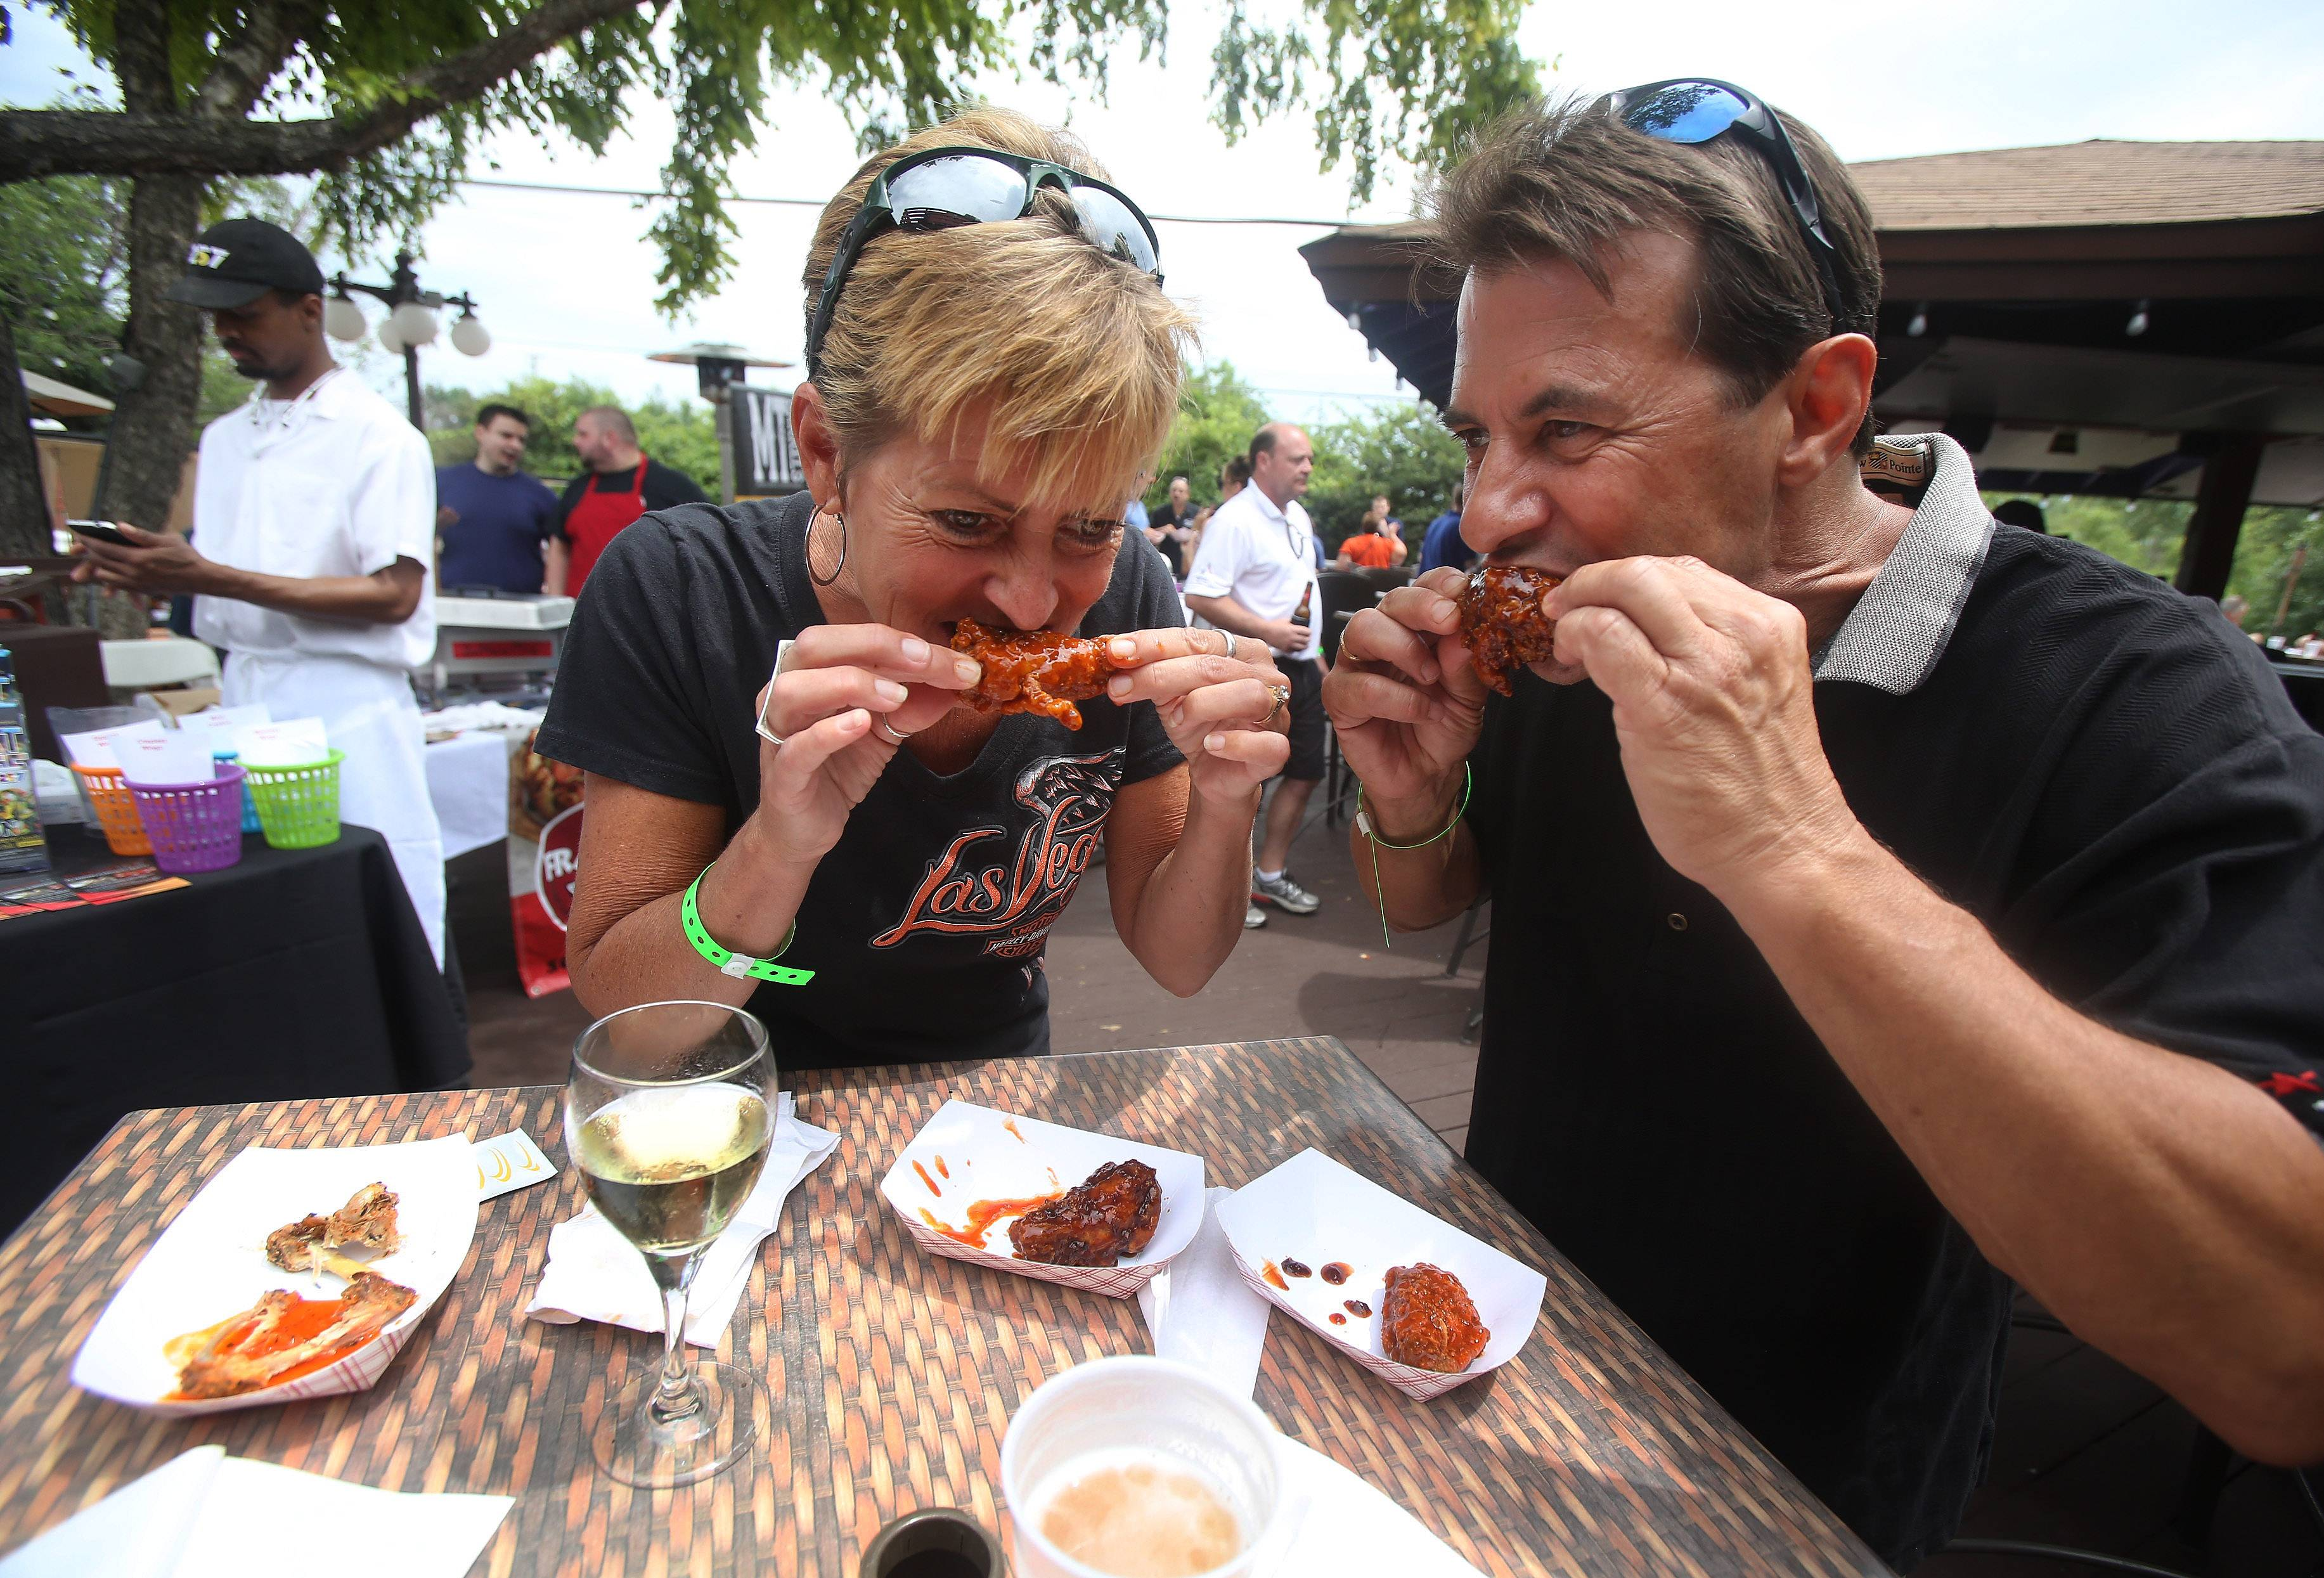 Lynn and Pete Manhard of Vernon Hills eat wings from Frato's Pizza during the Woodfield Area Children's Organization Wingfest and Bags Tournament Sunday at Drink in Schaumburg. The festival featured wings from 11 restaurants to determine whose were the Best of the 'Burbs.